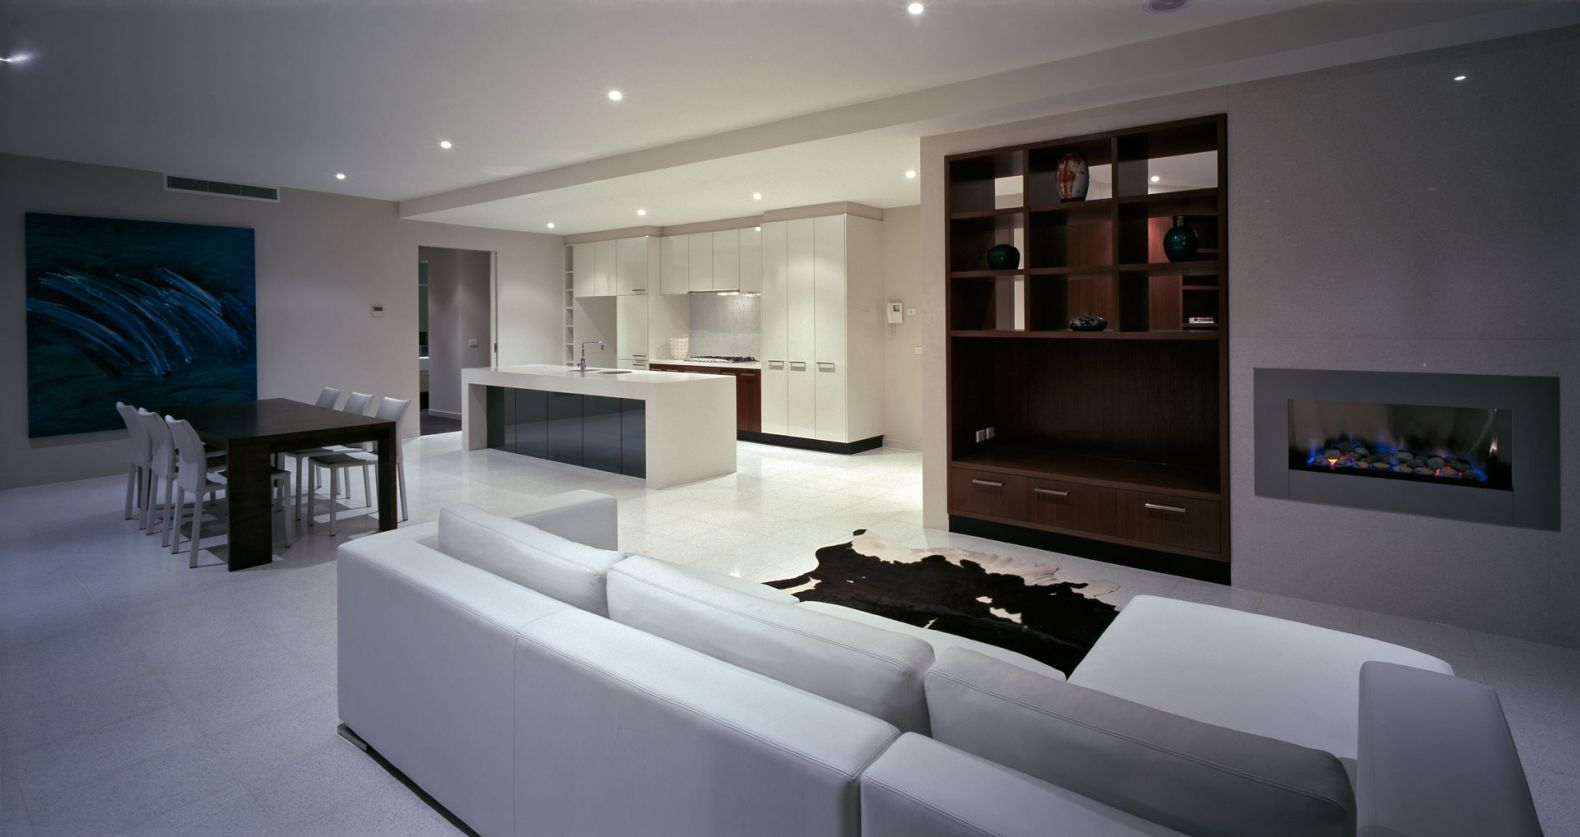 Interiorkitchenliving